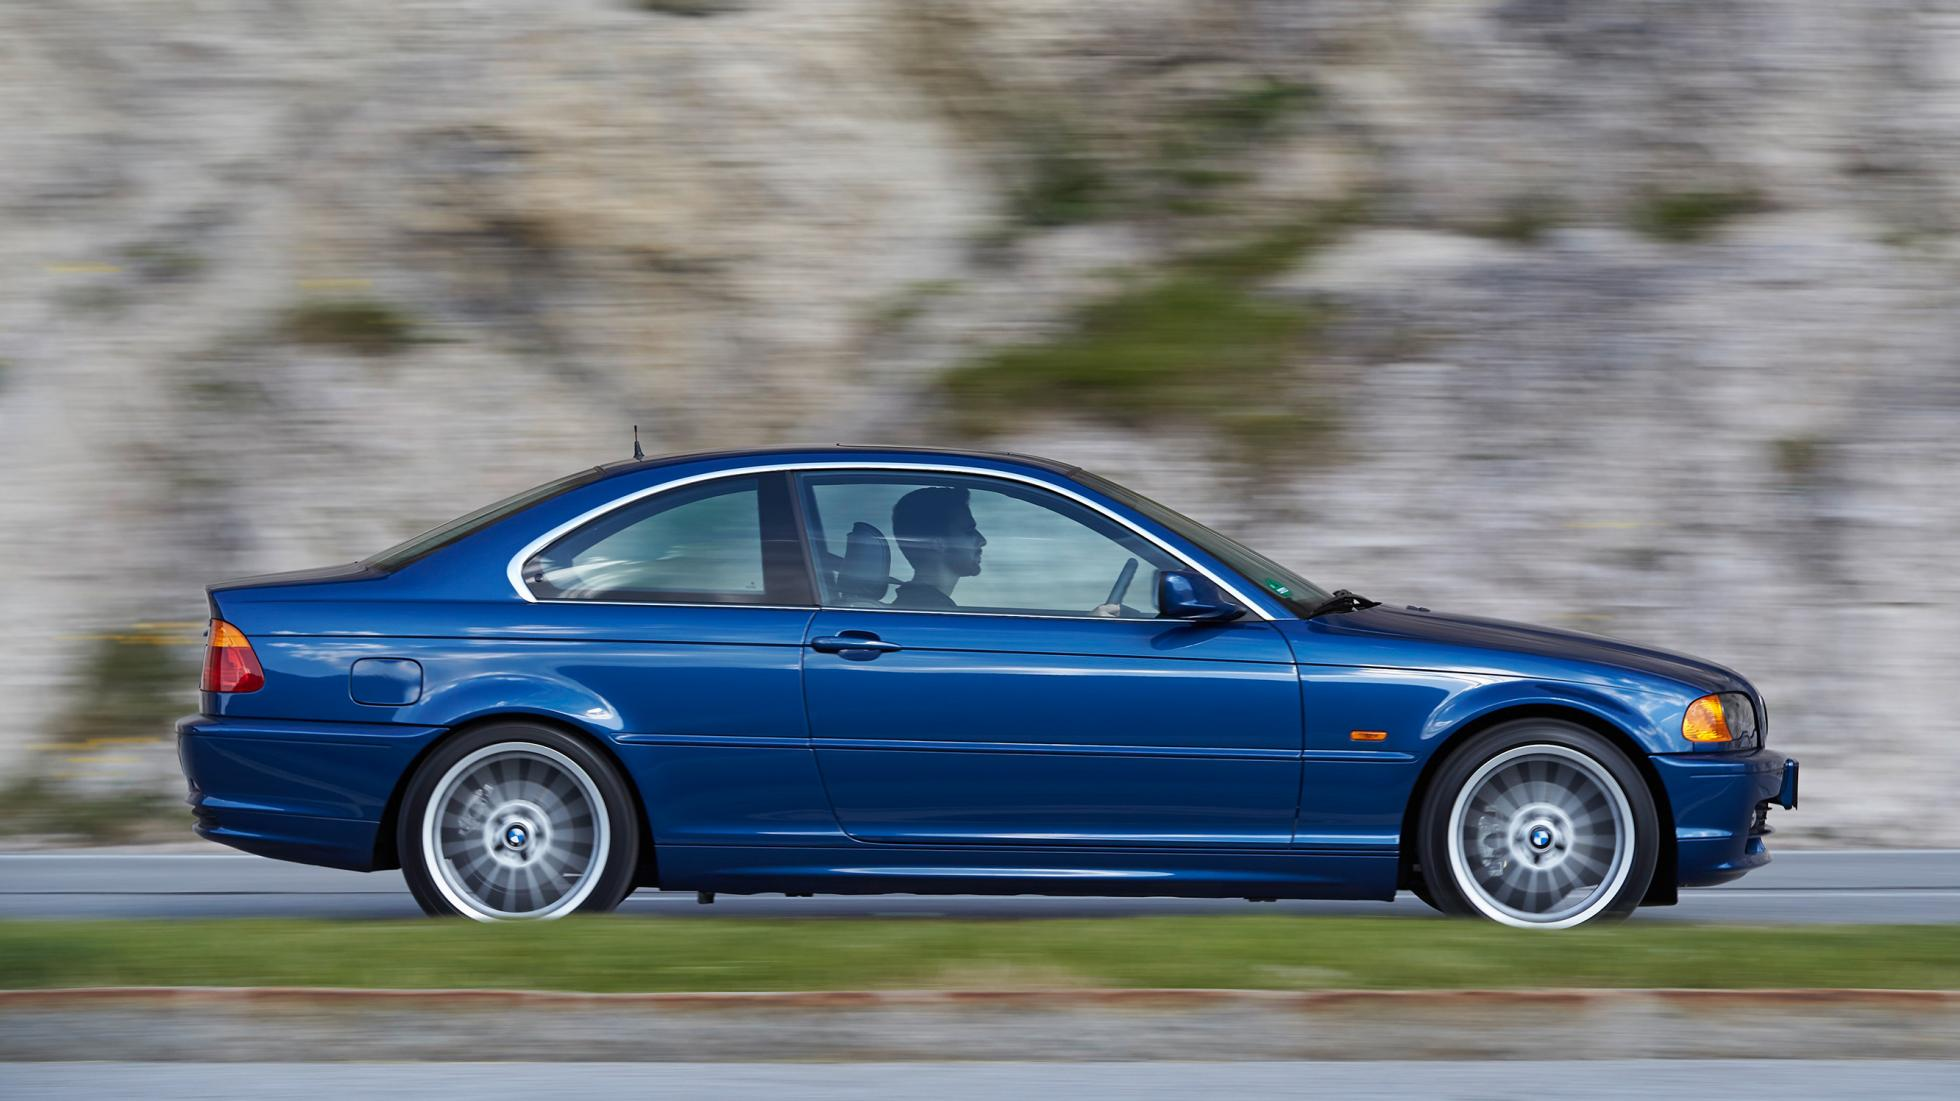 BMW-Serie-3-E46-Coupe.jpg